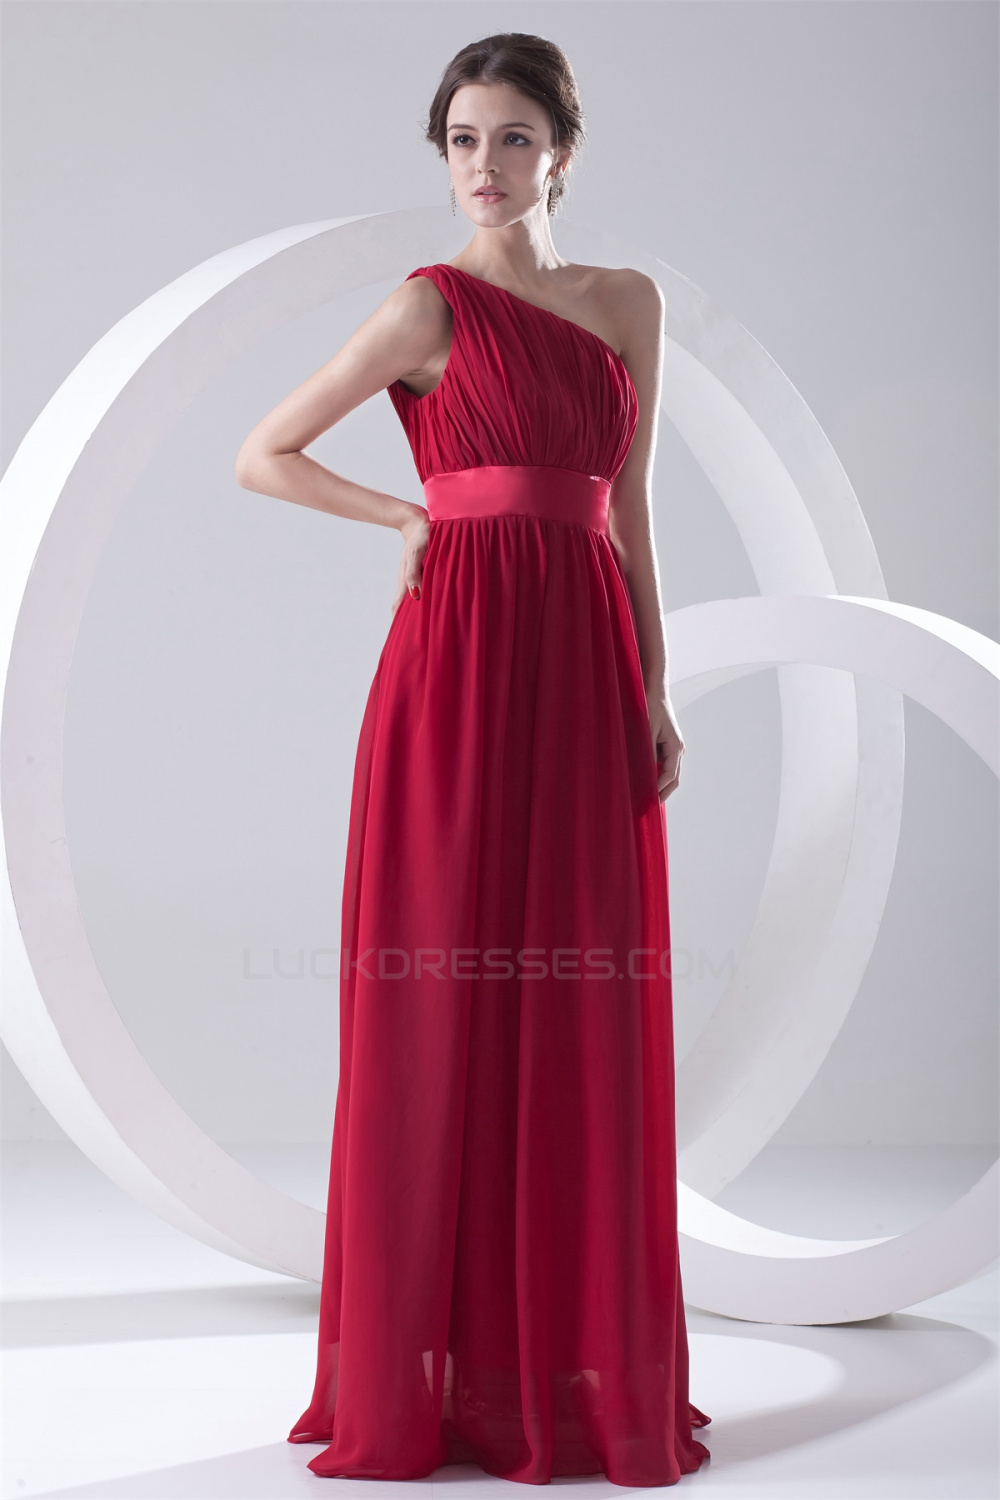 Long bridesmaids dresses under 100 gallery braidsmaid dress shoulder chiffon red long bridesmaid dresses under 100 02010173 one shoulder chiffon red long bridesmaid dresses ombrellifo Images